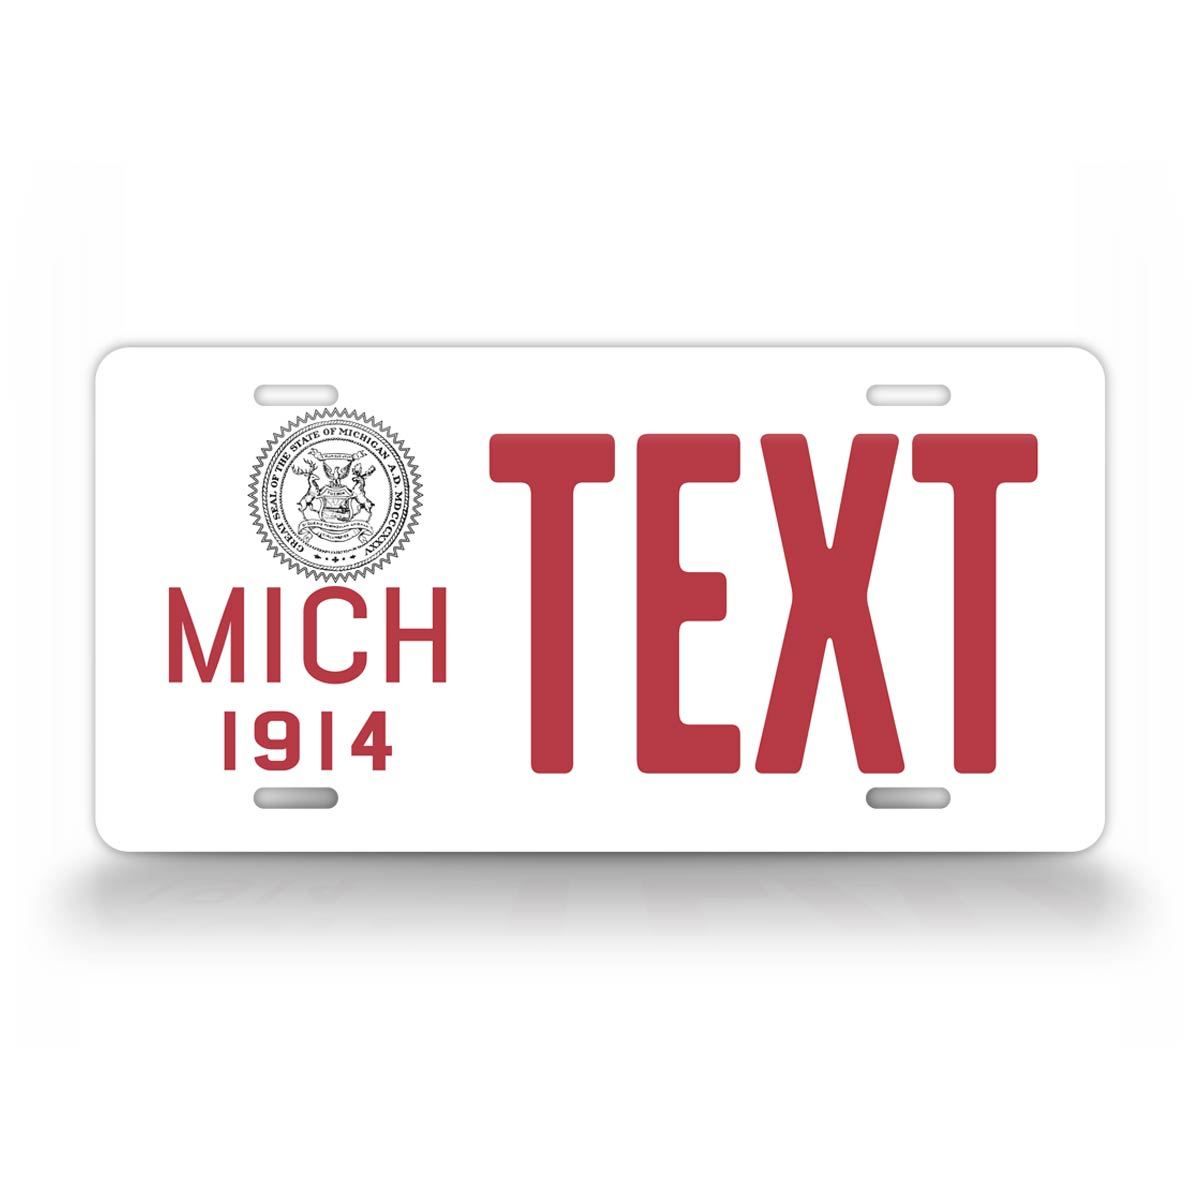 Custom Text Red And White Michigan Novelty 1914 License Plate